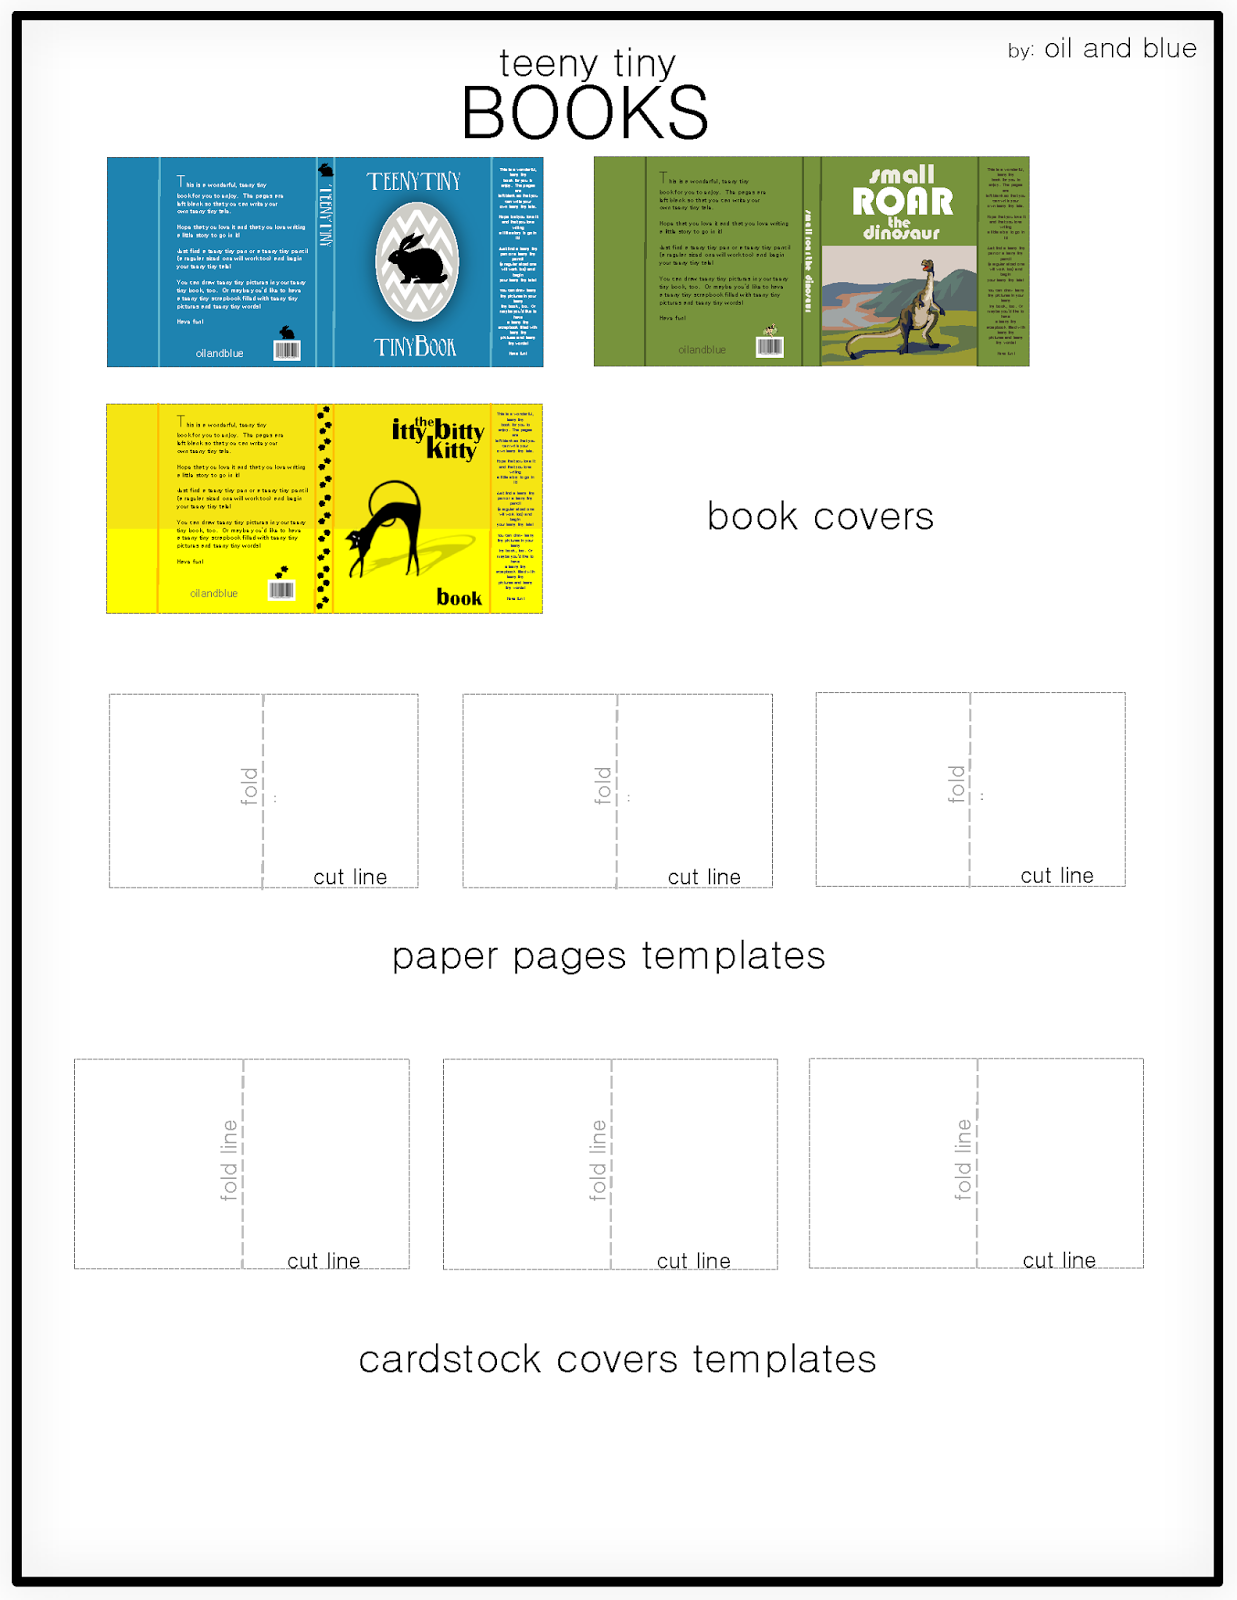 books templates free download